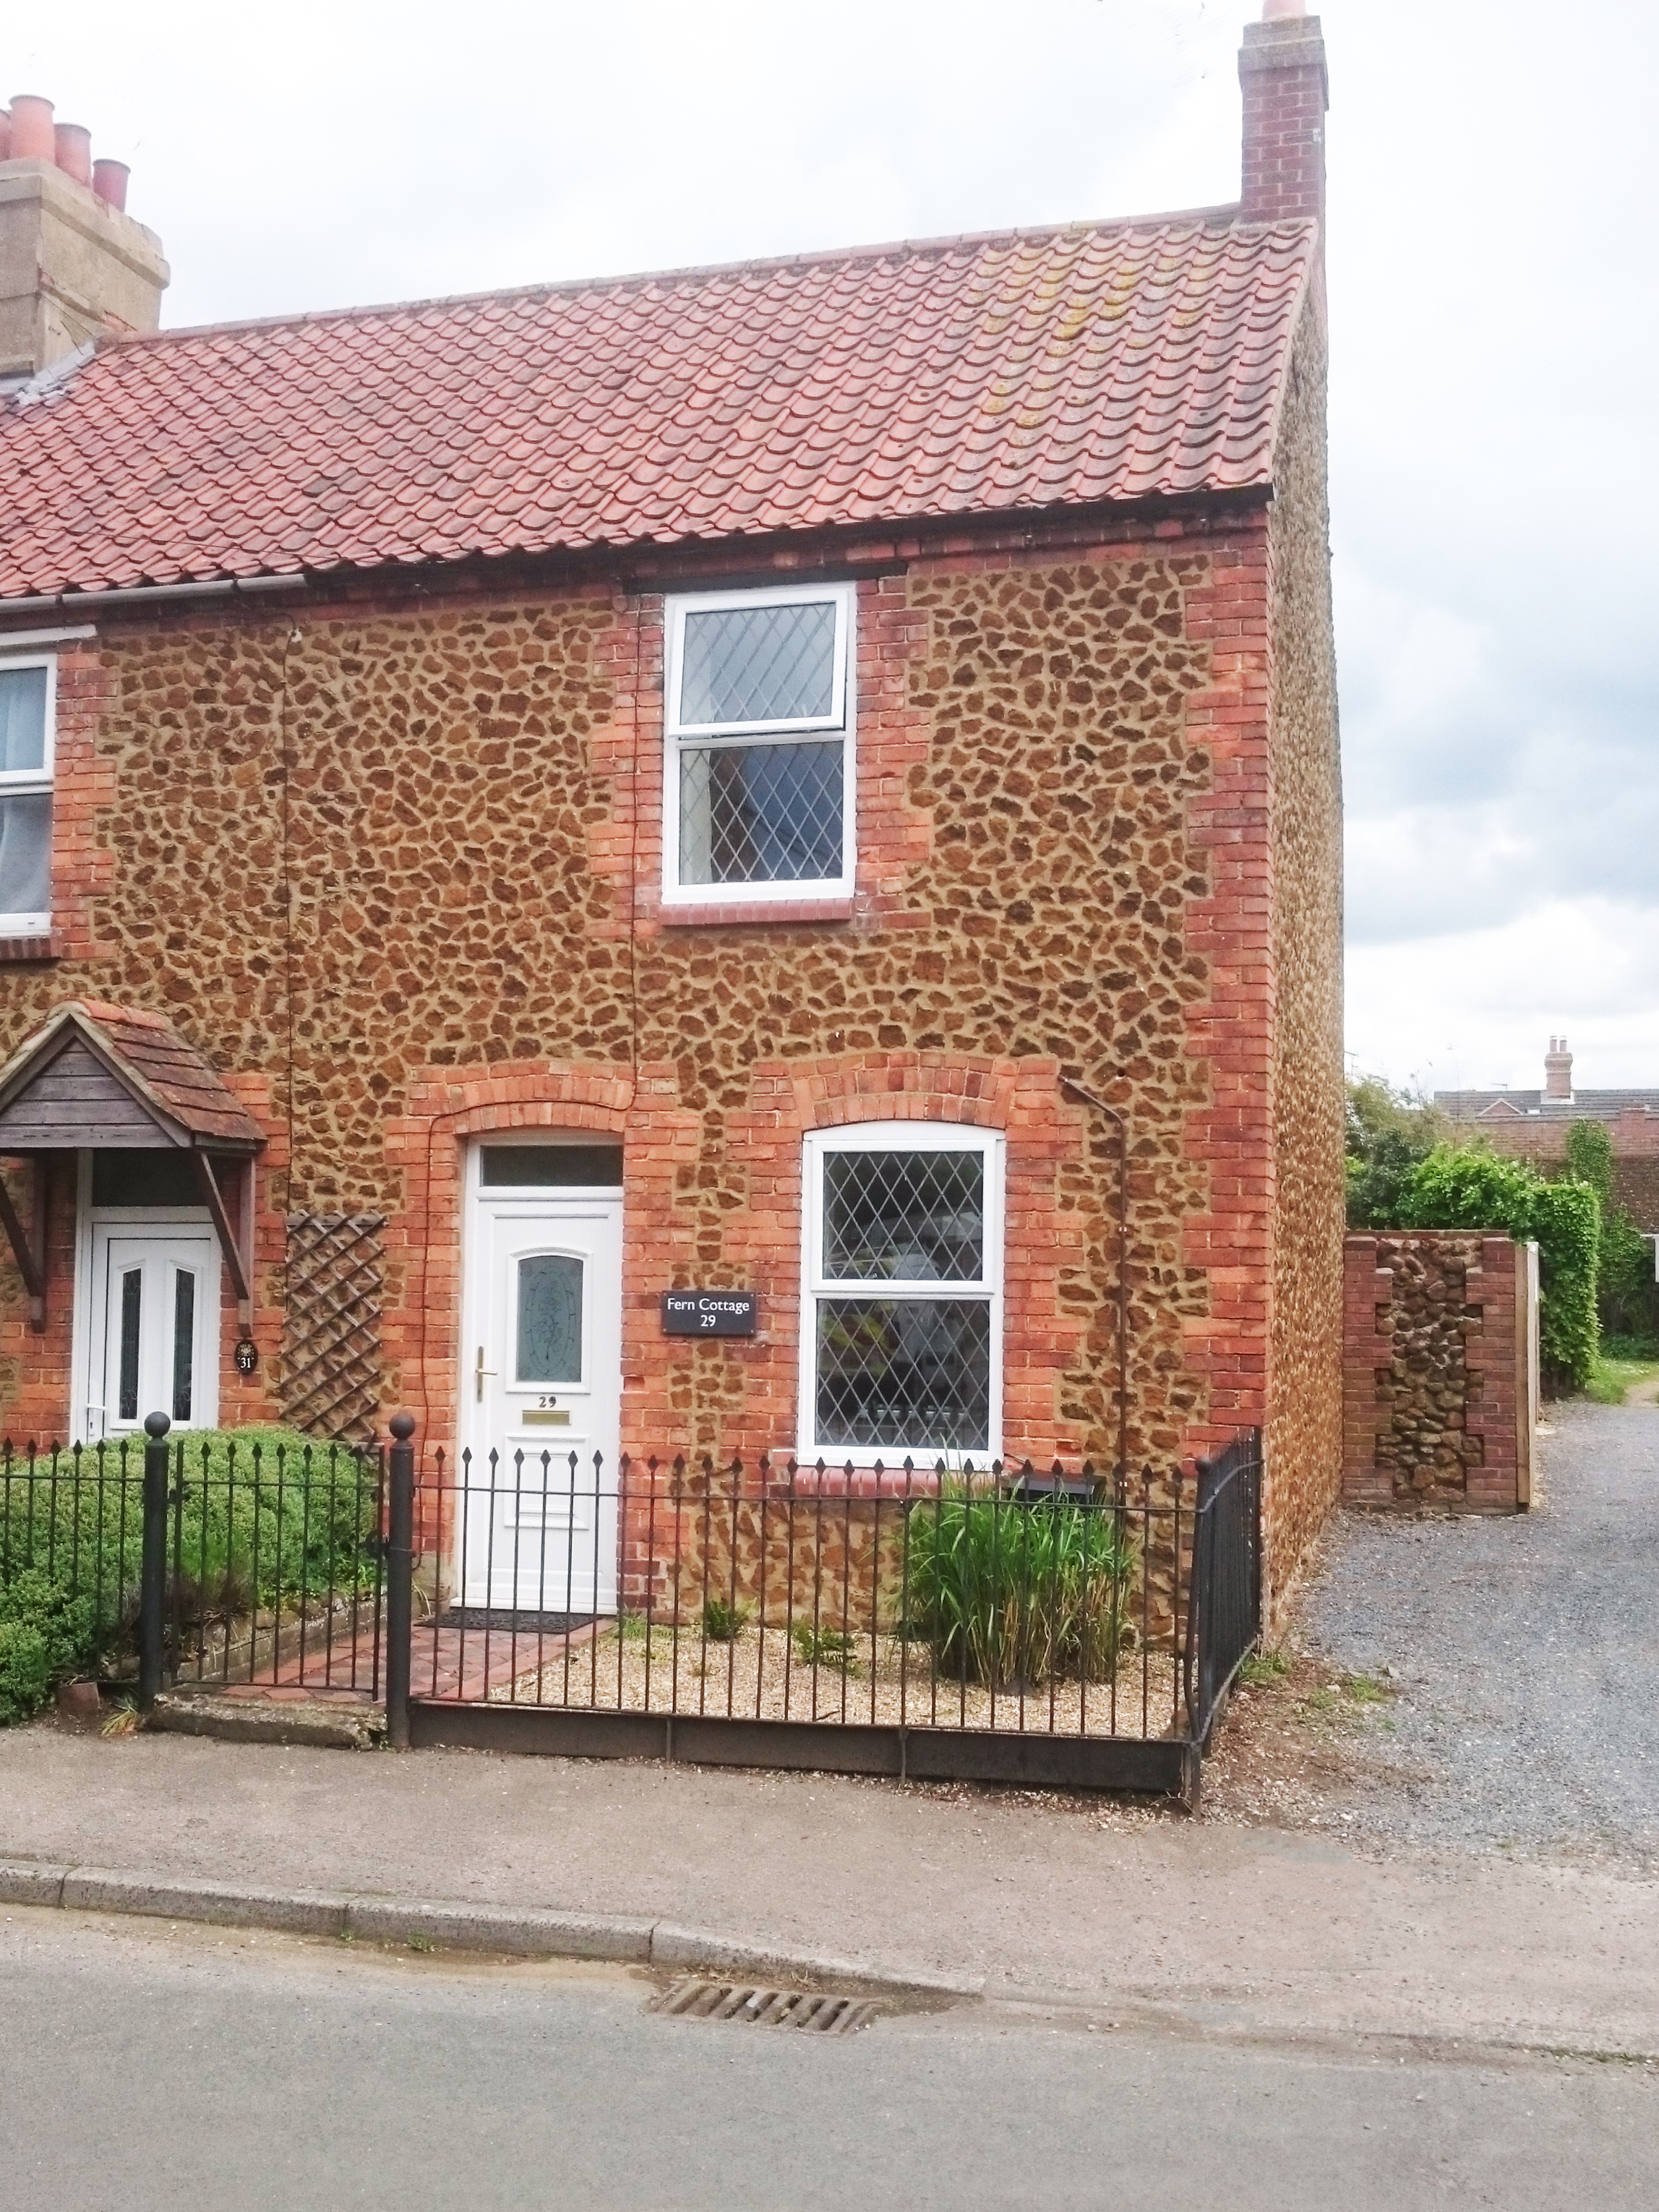 3 bedroom Cottage for rent in Heacham